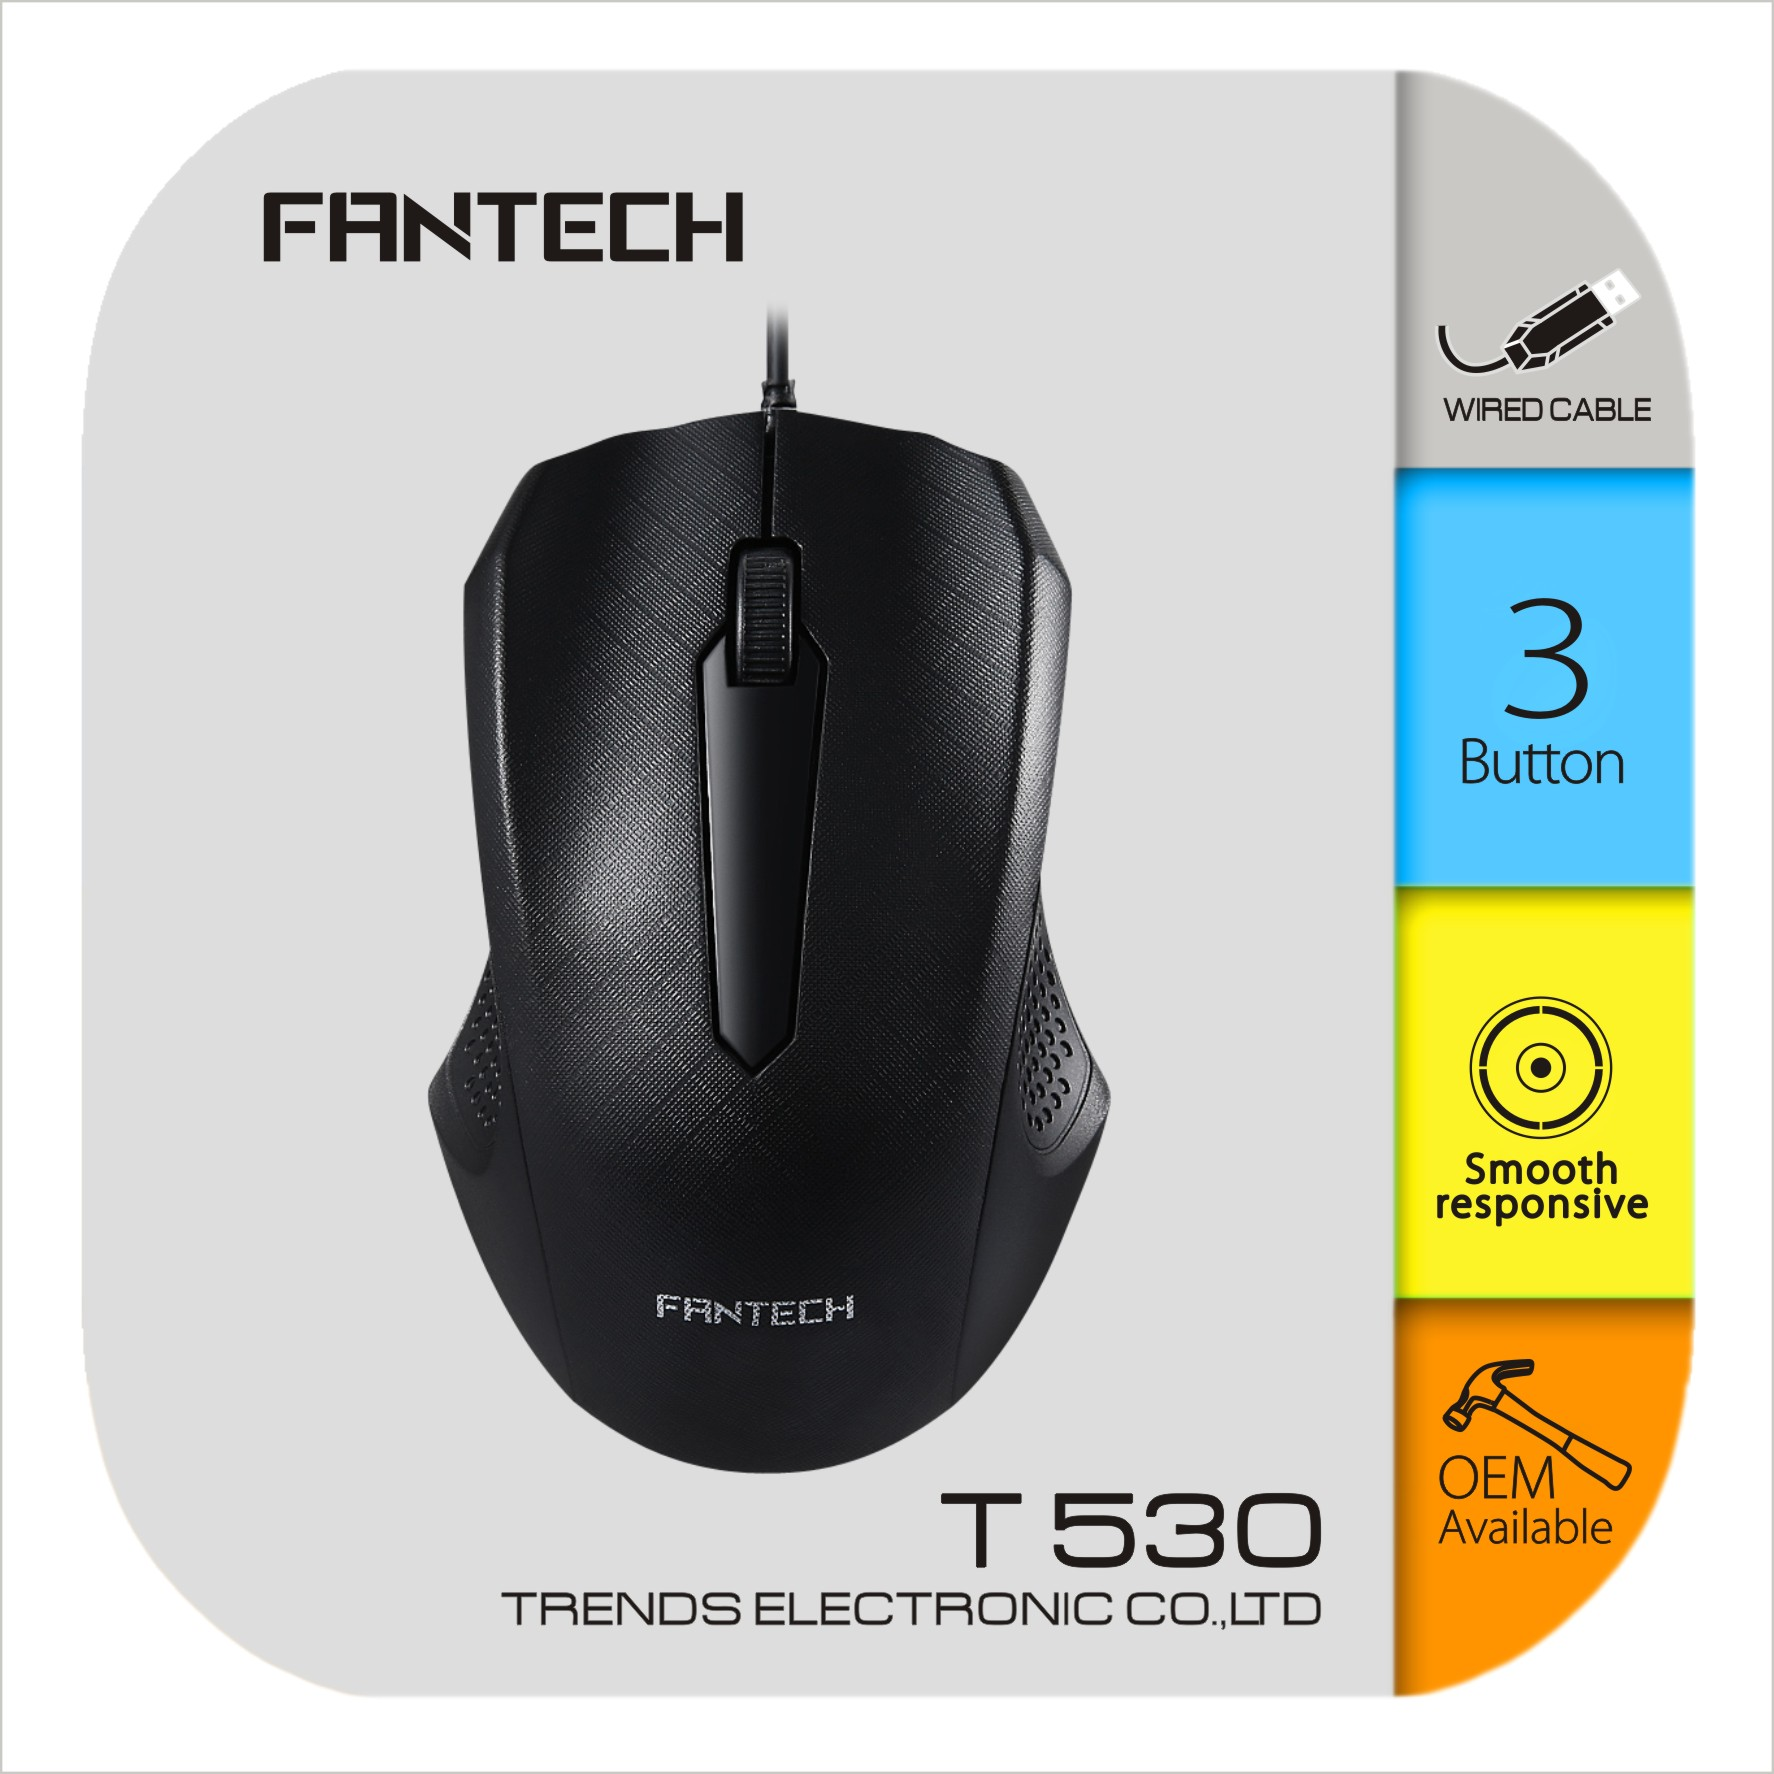 Fantech T530 Wired Mouse